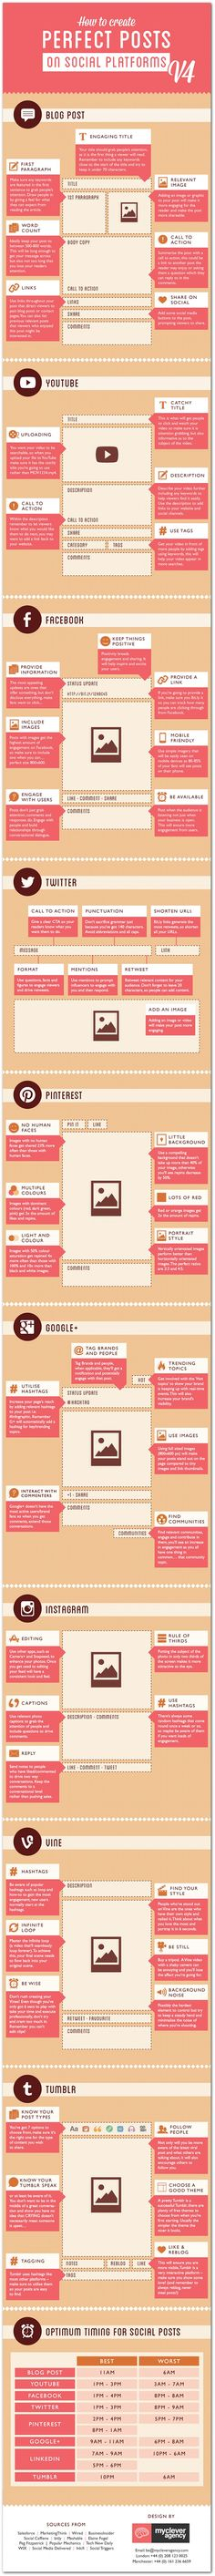 A guide to perfect social media posts   Articles   Home